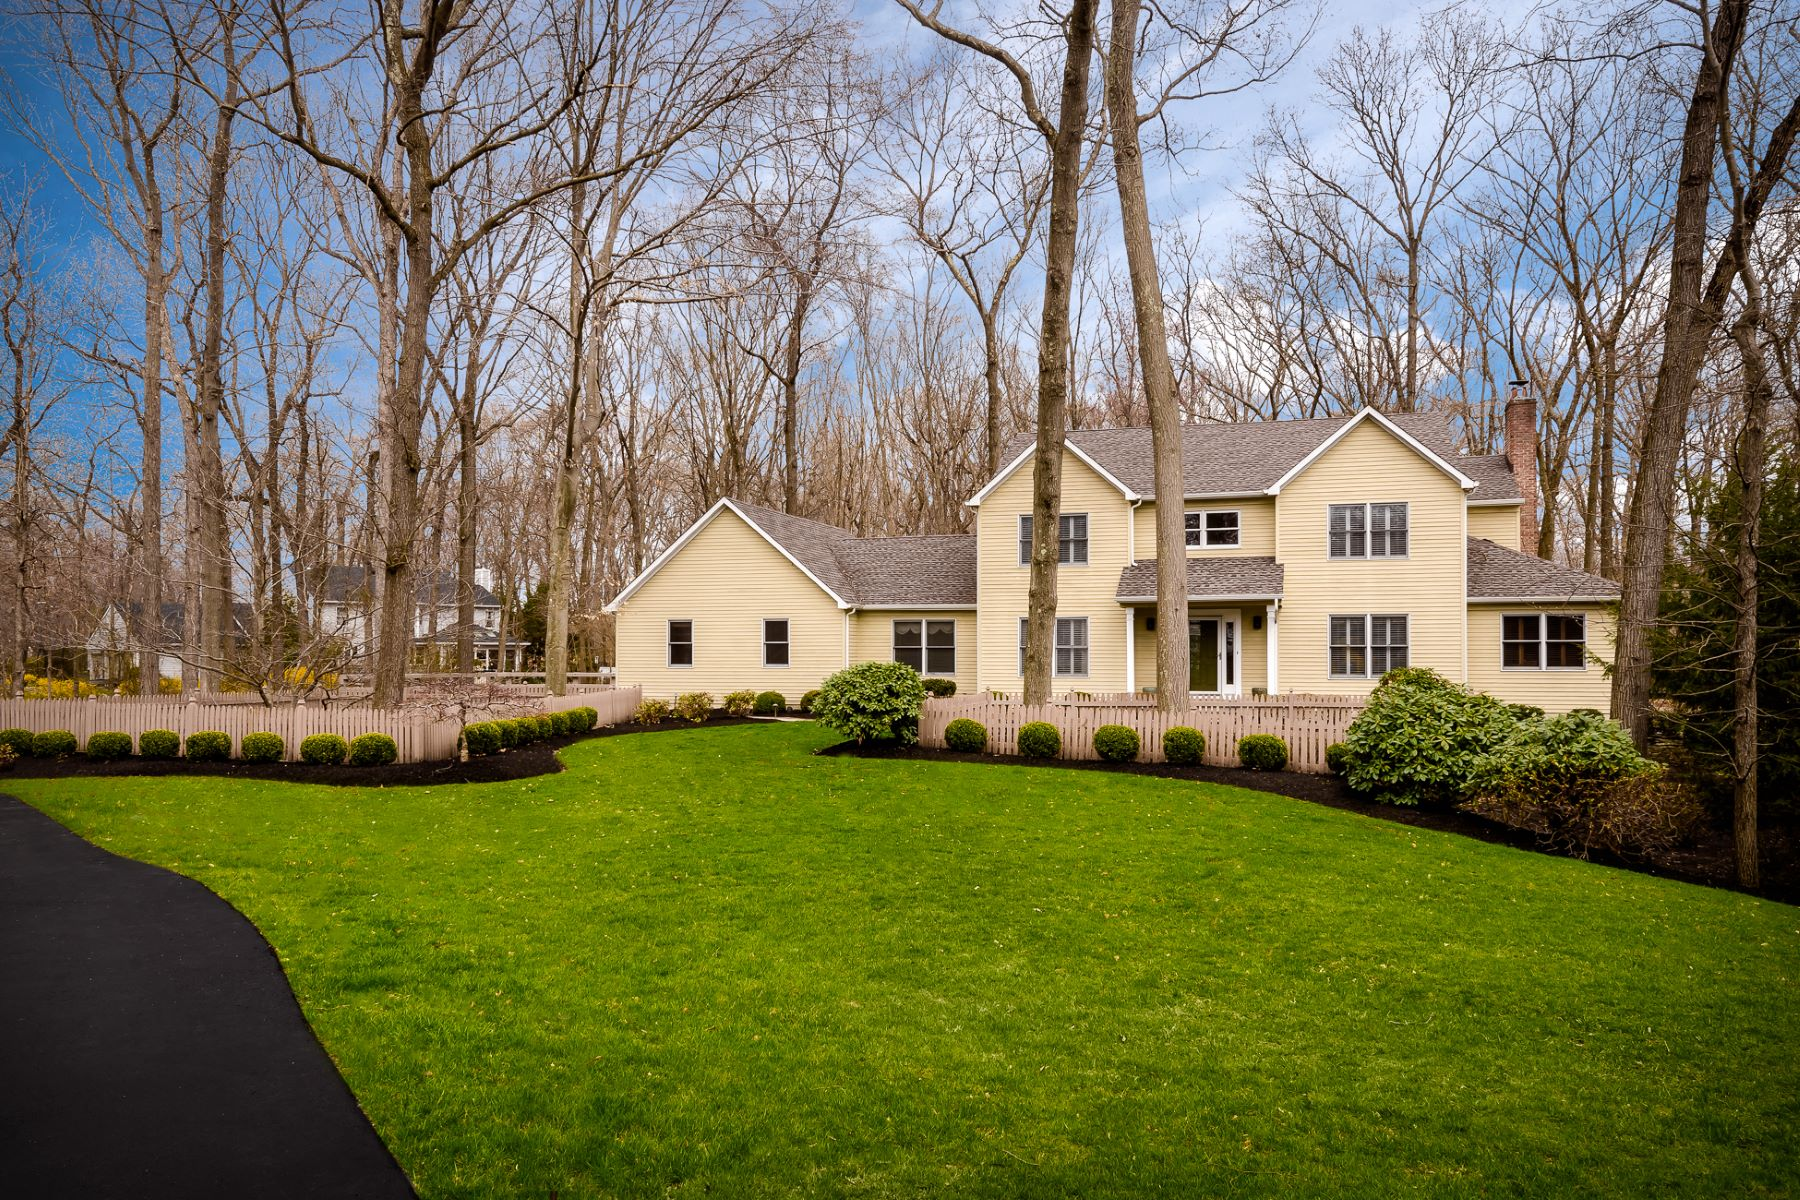 Property vì Bán tại A Premium Position on a Manicured Cul-De-Sac 16 Blackhawk Court, West Windsor, New Jersey 08550 Hoa Kỳ